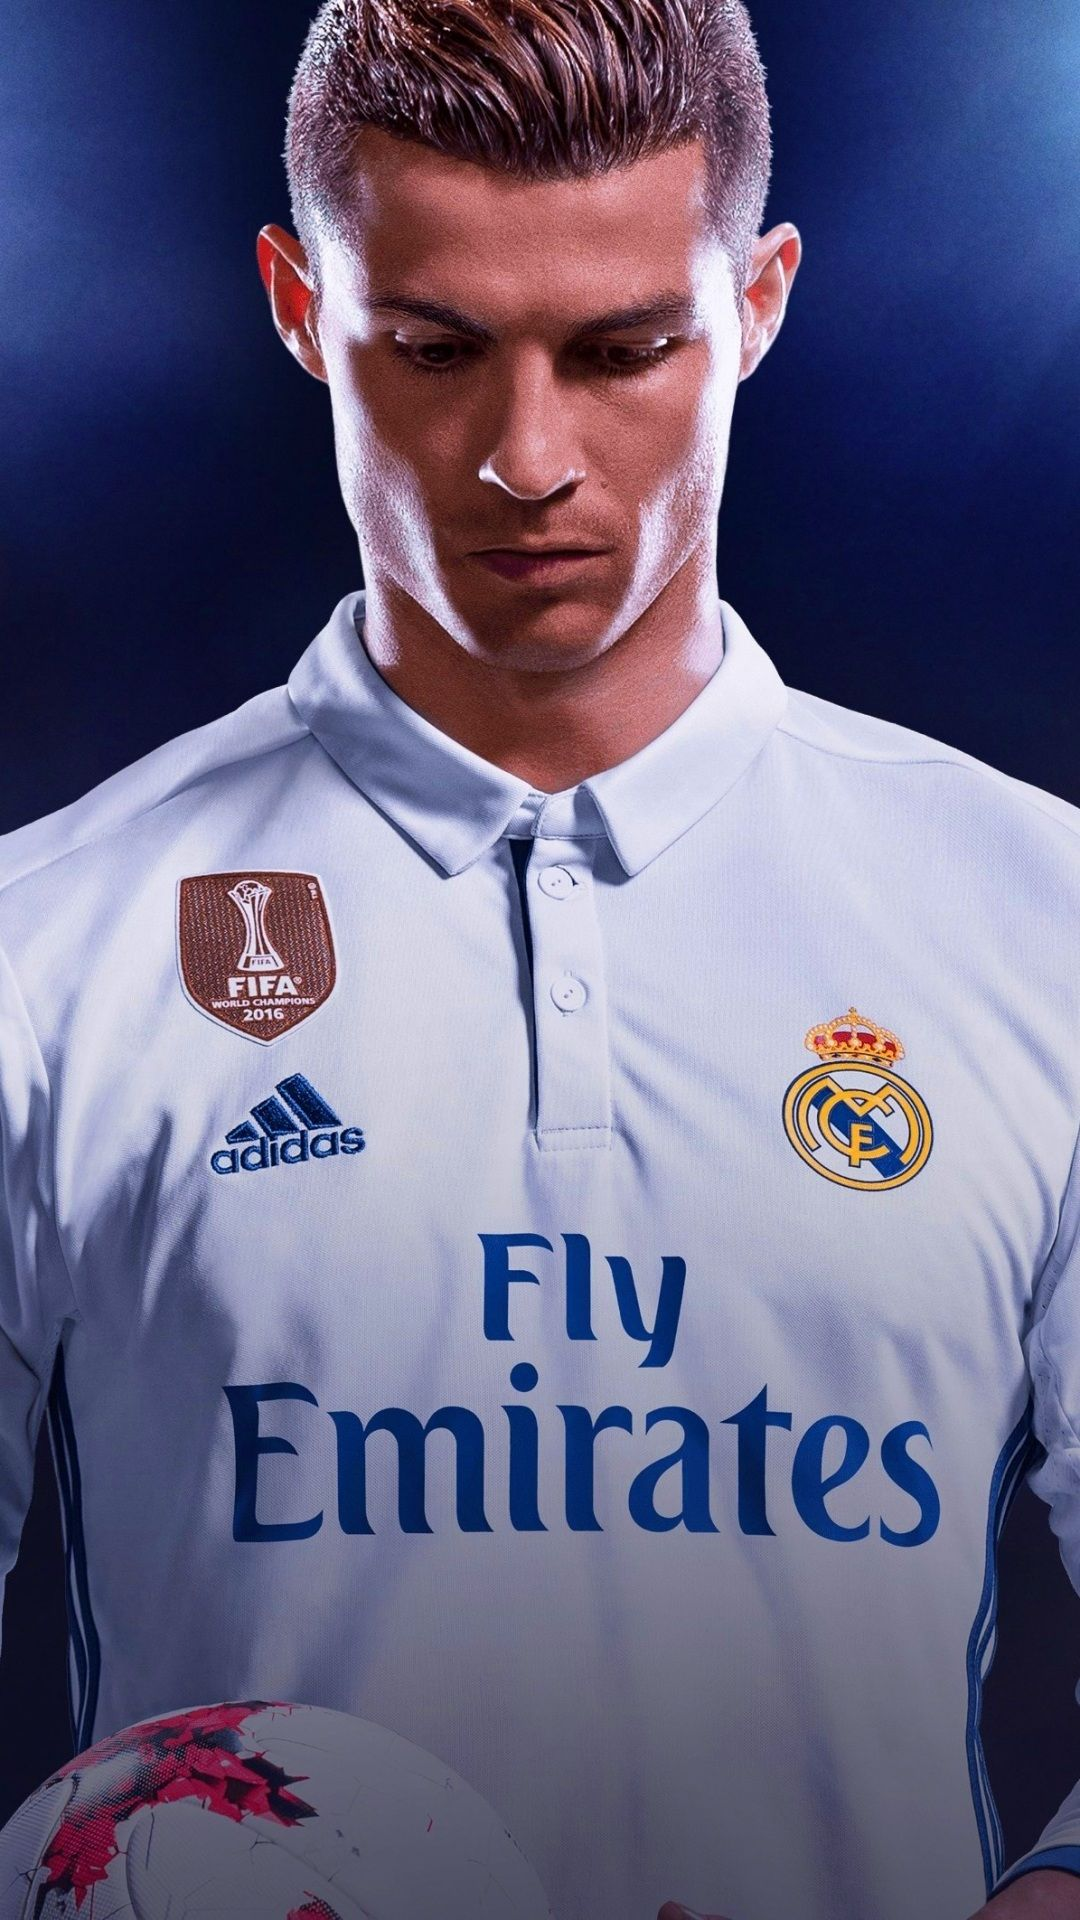 New Cristiano Ronaldo Wallpaper Hd To Download Wallpaper At